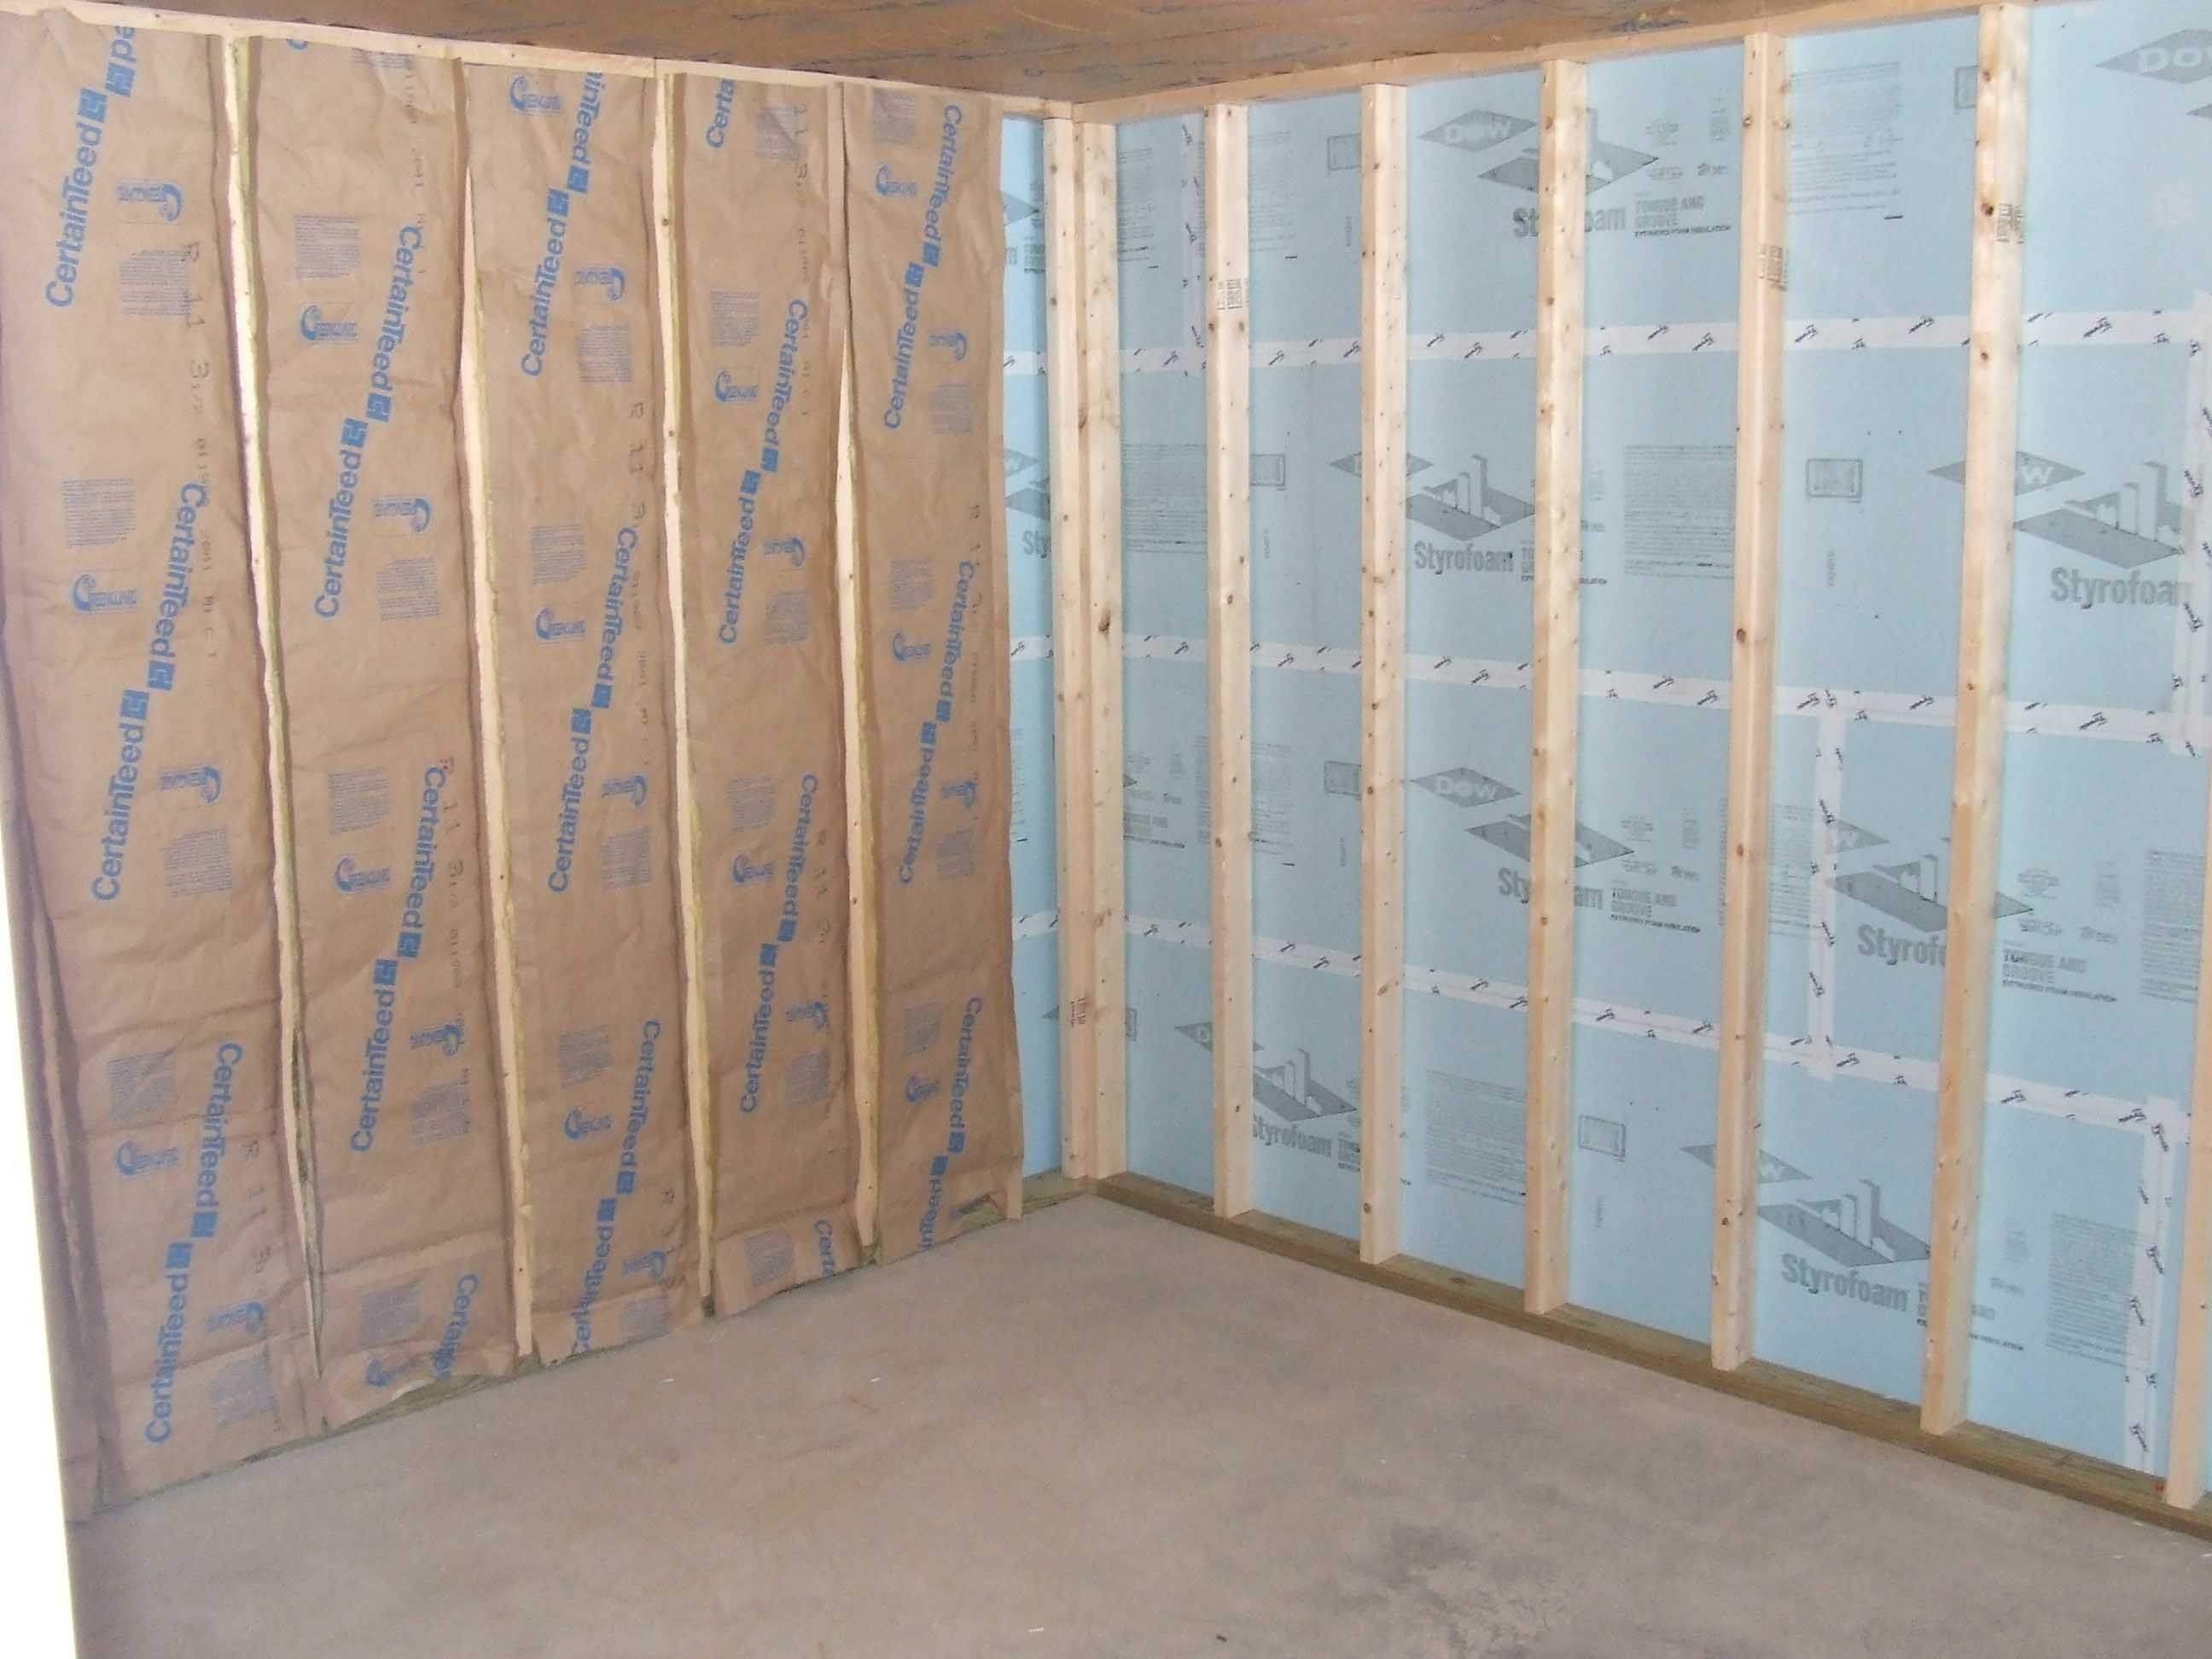 Best Batt Insulation For Basement Walls Basement Insulation Insulating Basement Walls Finishing Basement Walls